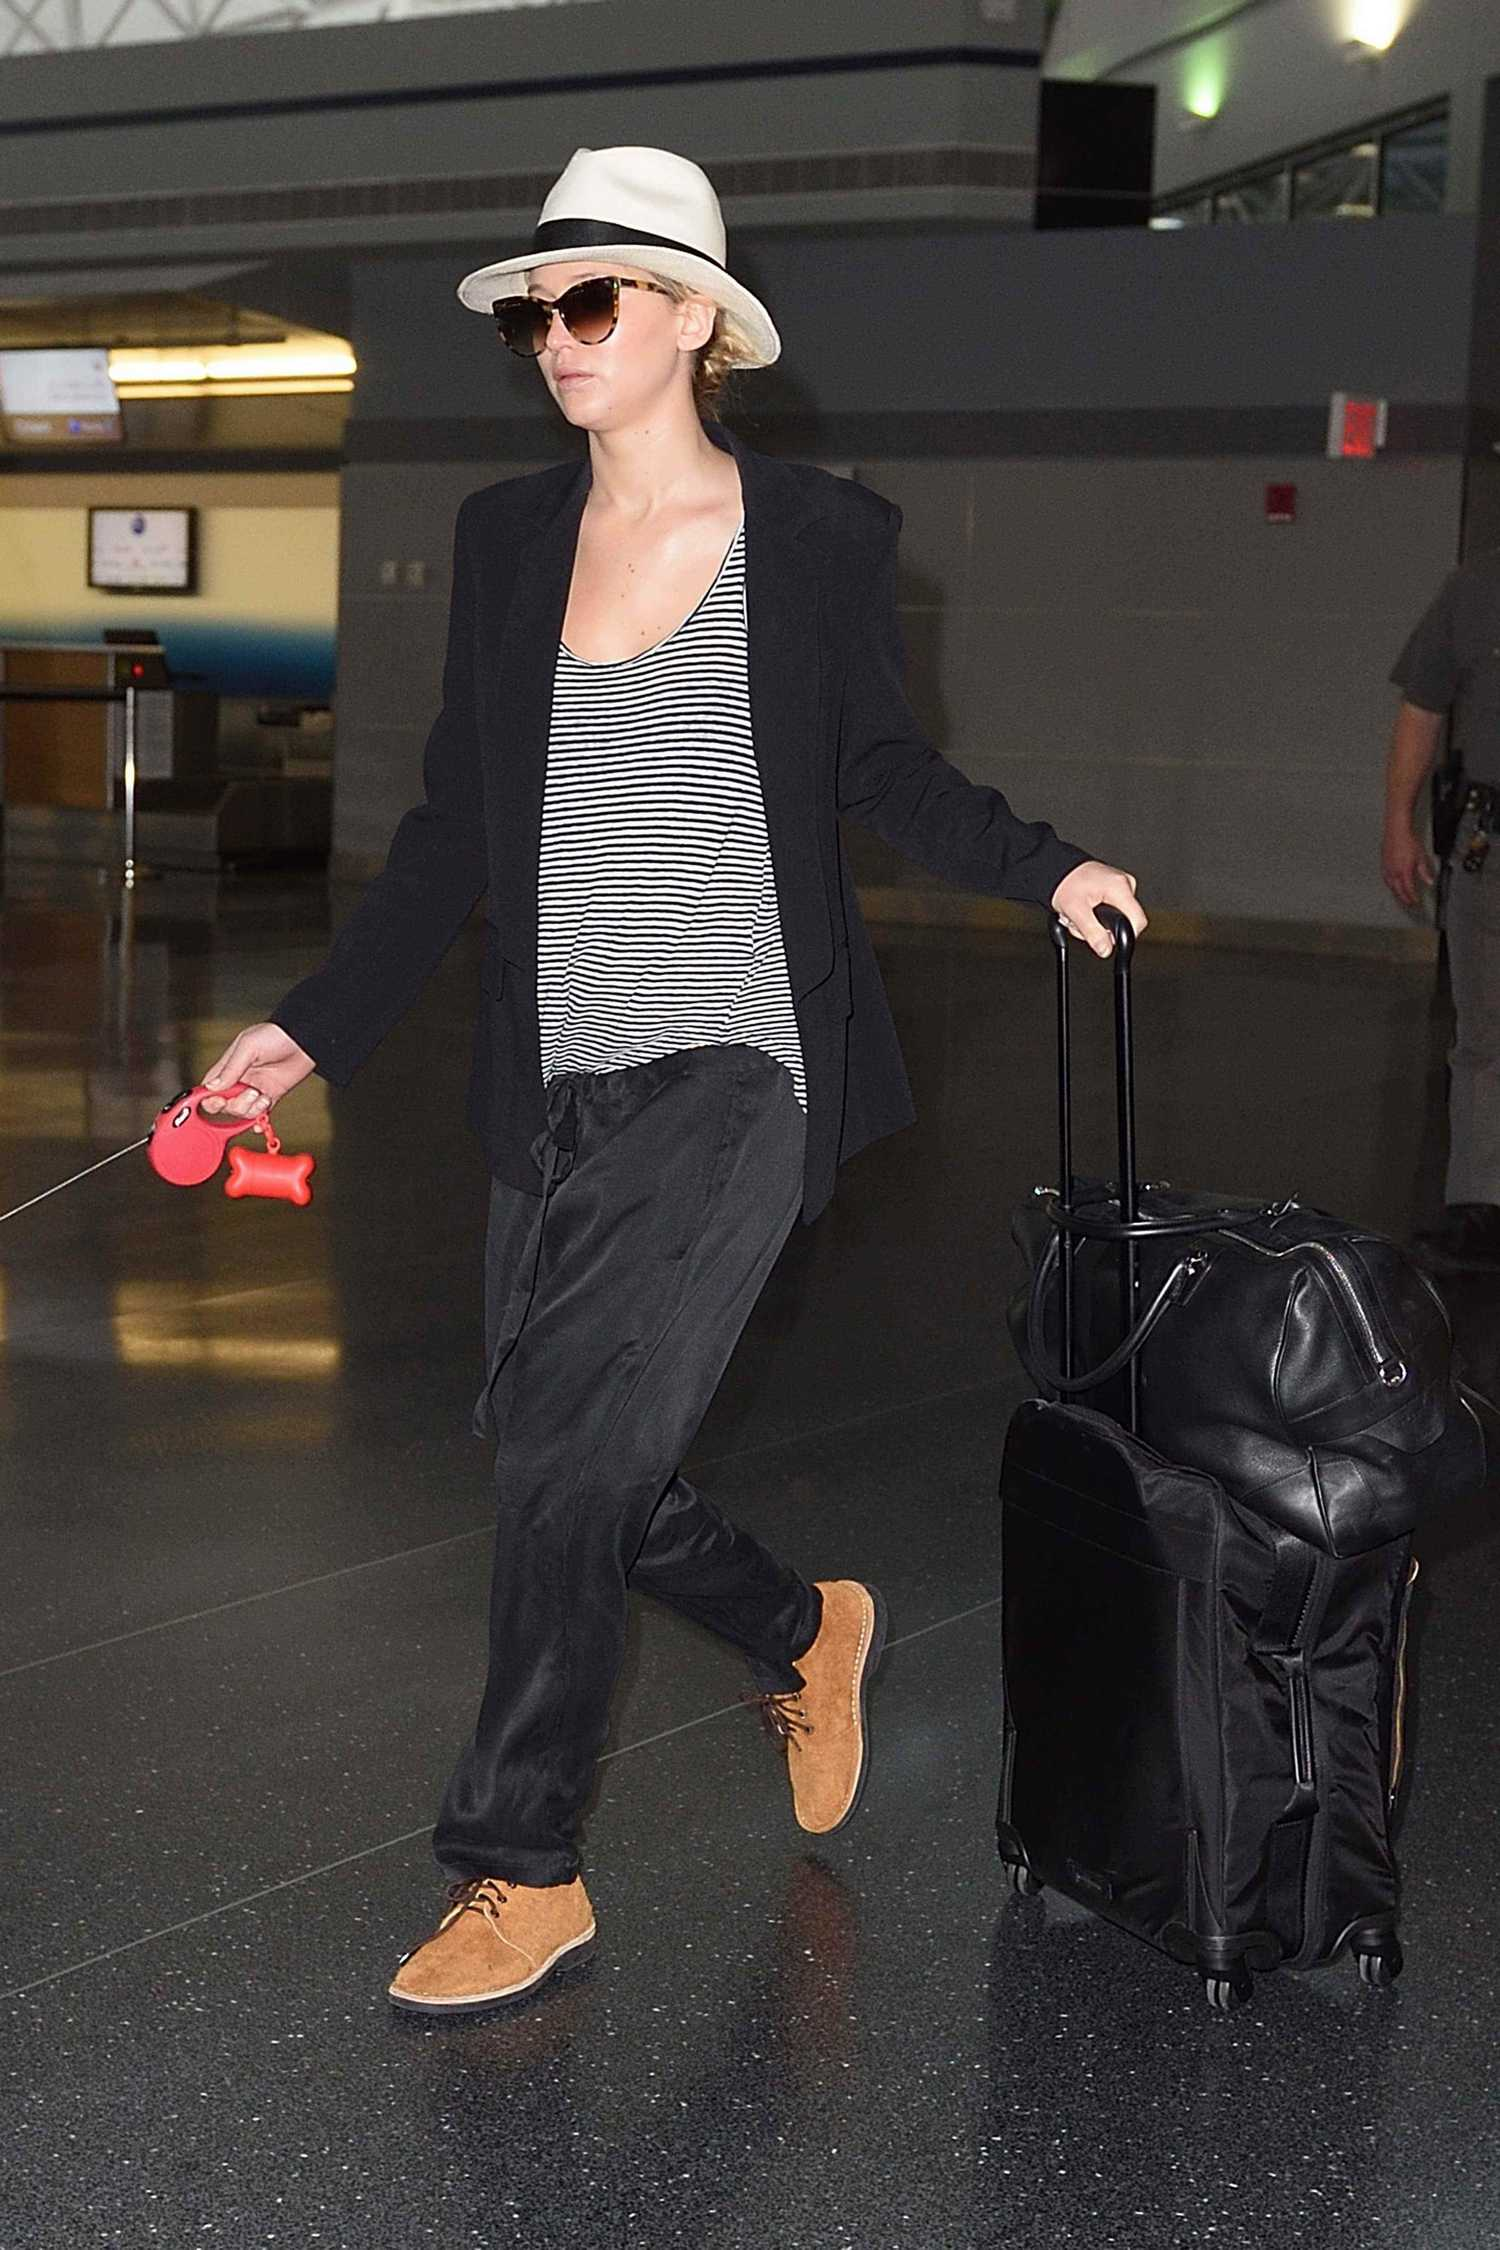 http://jenniferlawrencedaily.com/gallery/albums/userpics/10001/Walking_Her_Dog_at_JFK_Airport_-_June_22-03.jpg